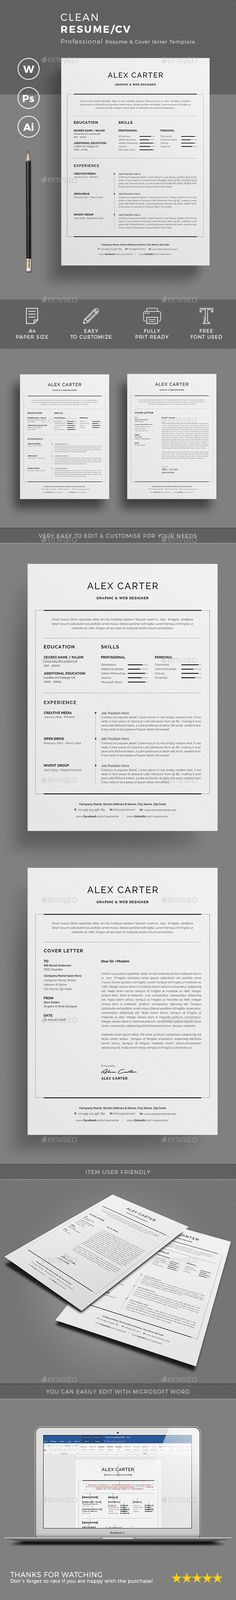 Clean Resume\/CV Resume cv, Cleanses and Resume - clean resume design